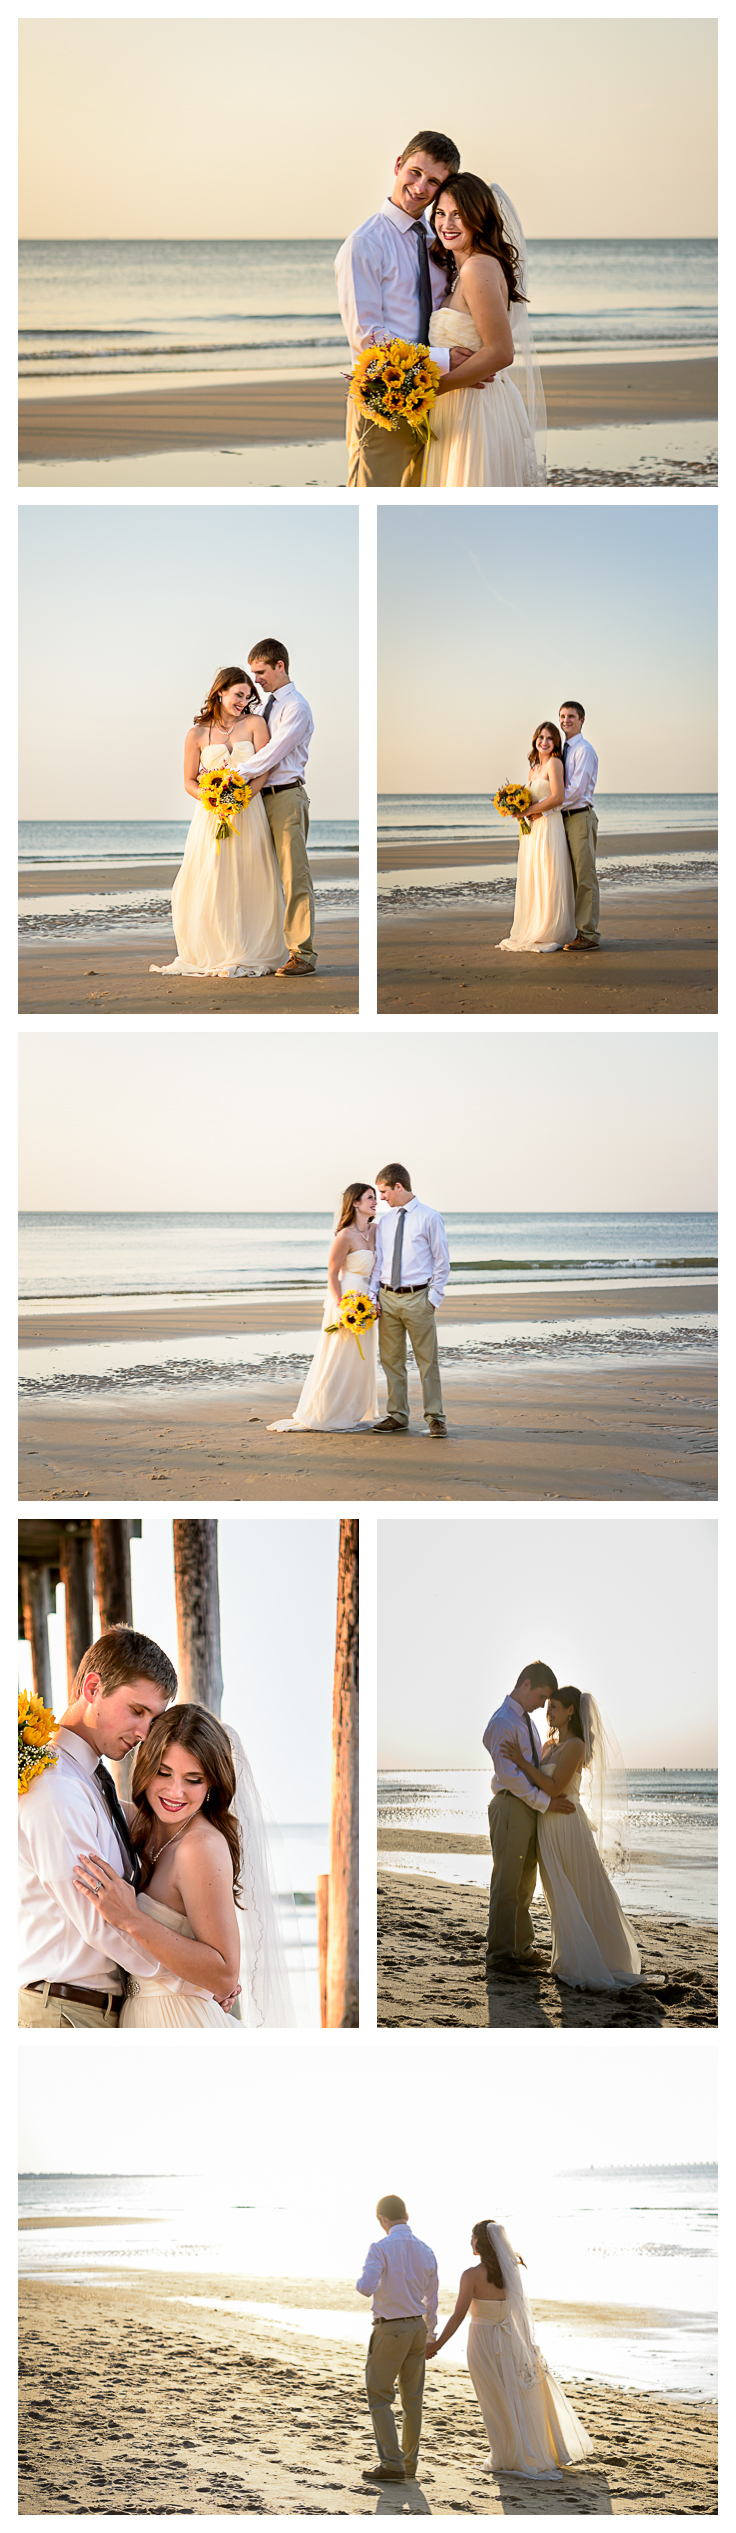 Wedding-Engagement-Senior-Maternity-Portrait-Photographer-Jessica-Patricia-Photography-Norfolk-Virginia-Beach-VA